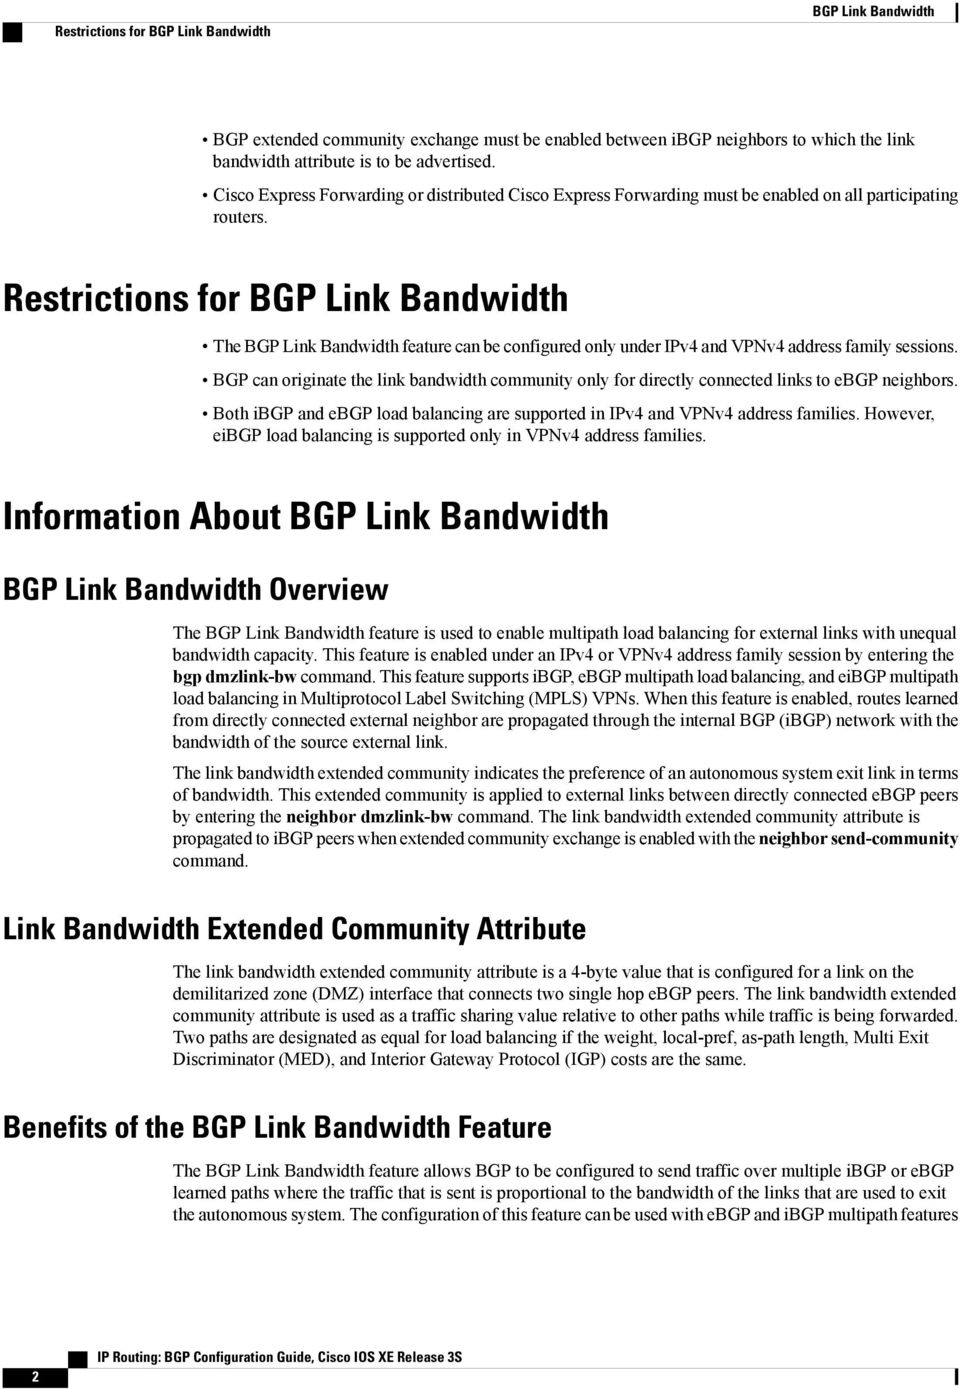 Restrictions for The feature can be configured only under IPv4 and VPNv4 address family sessions. BGP can originate the link bandwidth community only for directly connected links to ebgp neighbors.